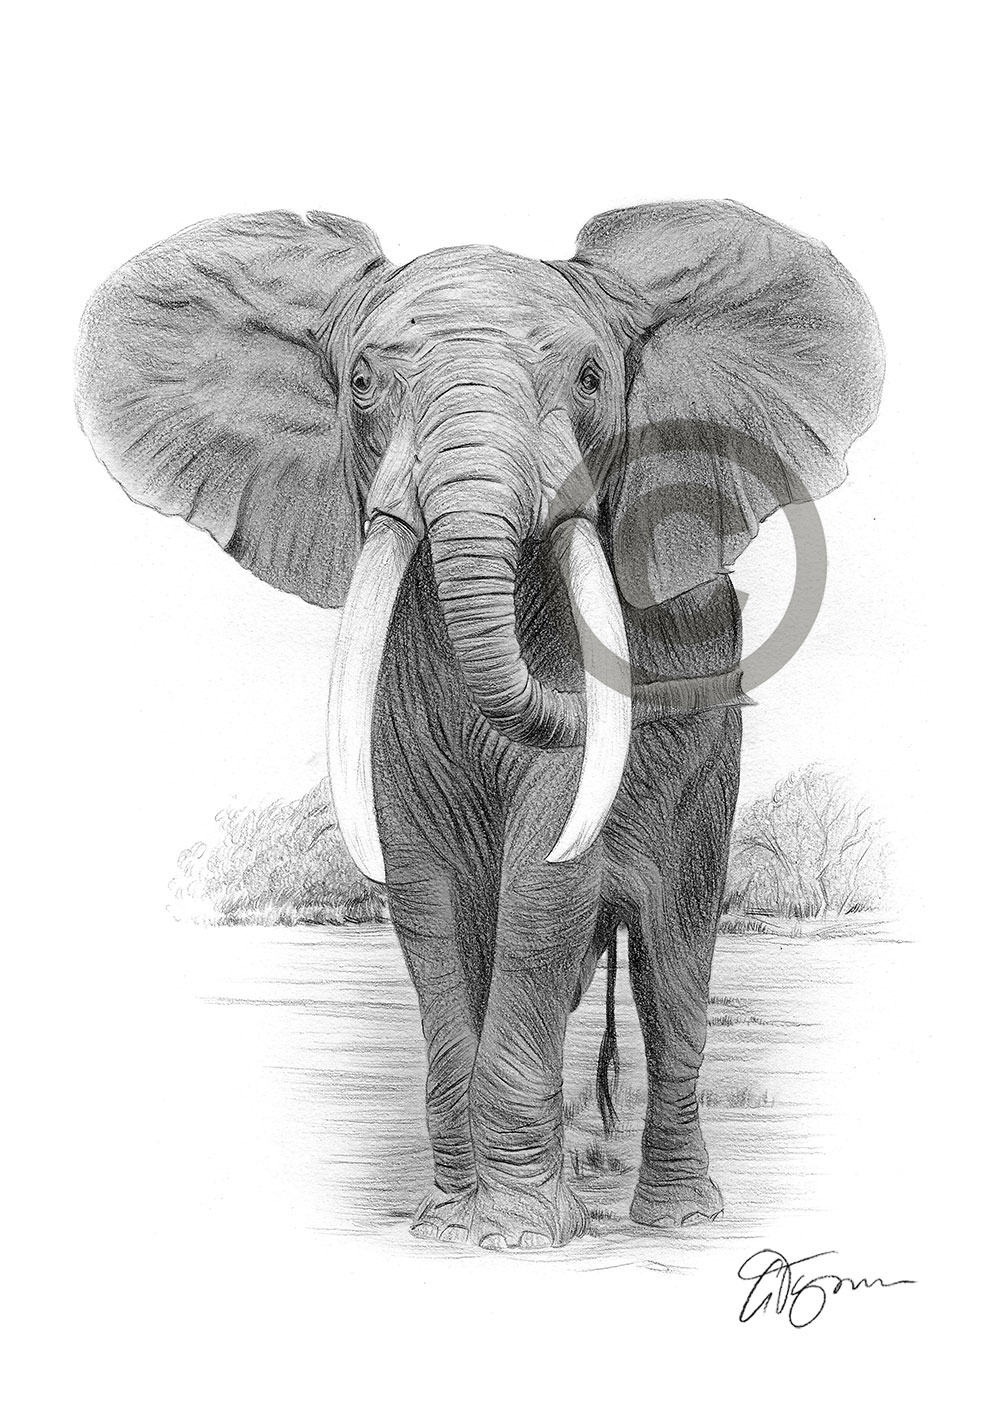 Pencil drawing of an African elephant by artist Gary Tymon